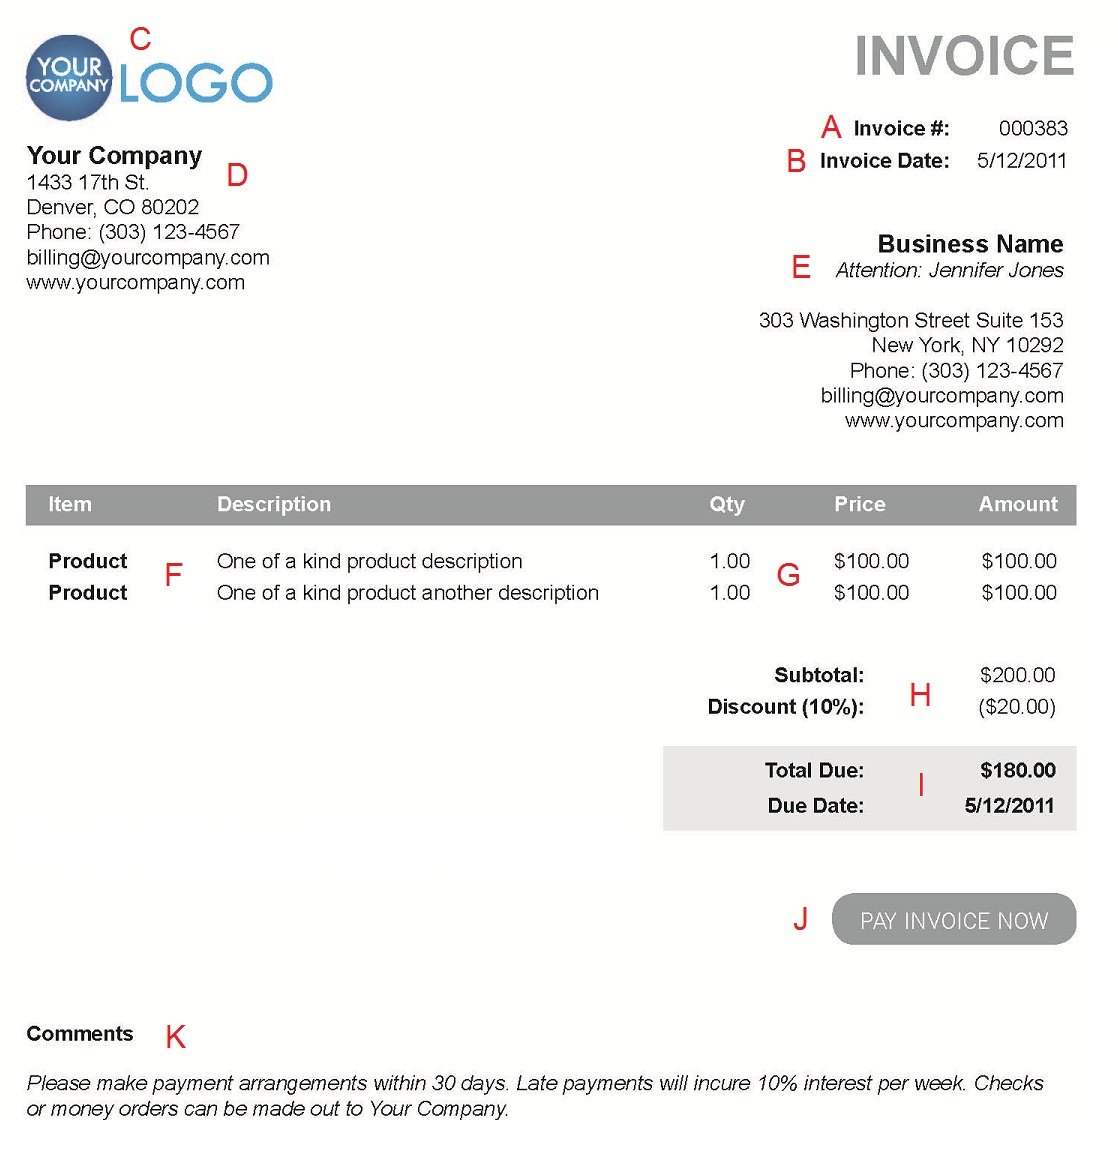 Hucareus  Fascinating The  Different Sections Of An Electronic Payment Invoice With Foxy A  With Divine Preparing Invoices Also Invoice Uk Template In Addition What Is A Cash Invoice And Invoice Discounting Finance As Well As Filemaker Pro Invoice Template Additionally Tax Invoices Template From Paysimplecom With Hucareus  Foxy The  Different Sections Of An Electronic Payment Invoice With Divine A  And Fascinating Preparing Invoices Also Invoice Uk Template In Addition What Is A Cash Invoice From Paysimplecom